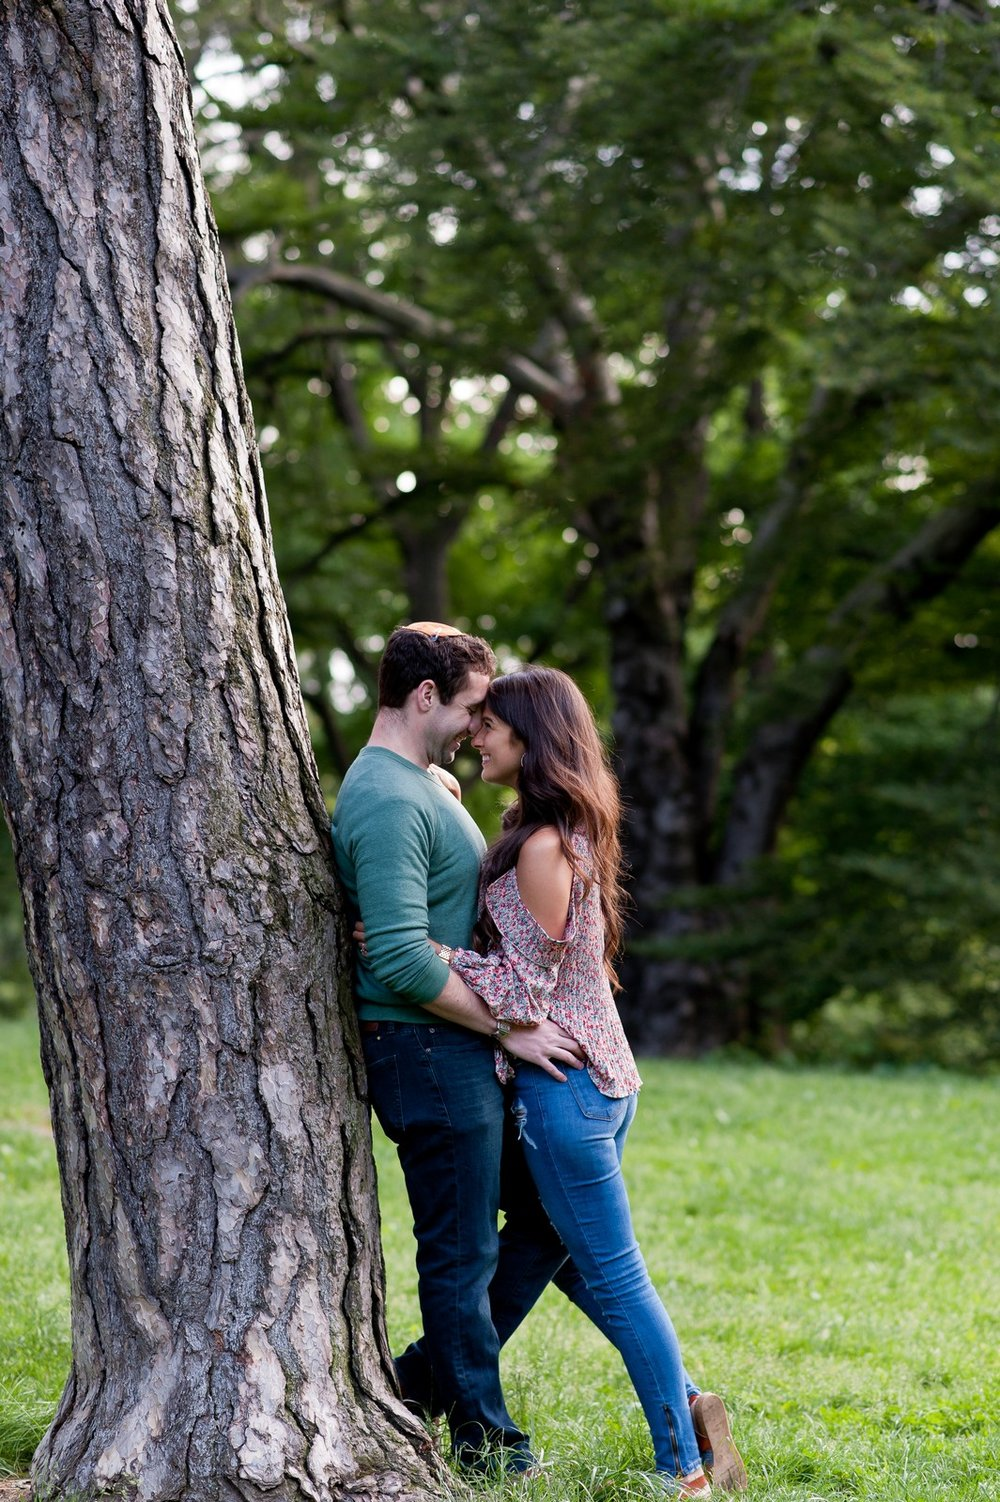 Ben and Sarit Engagement Session in Central Park, NYC, Photos by Chaim Schvarcz Bride Groom Couple Proposal Love